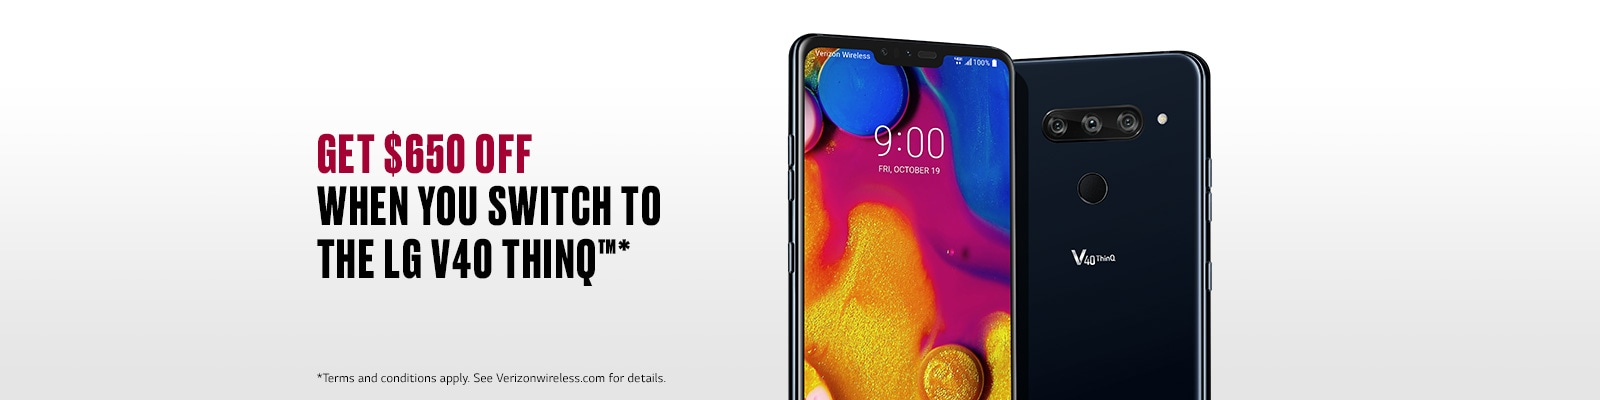 GET $650 OFF WHEN YOU SWITCH TO THE LG V40 THINQ. Terms and conditions apply. See Verizonwireless.com for details.